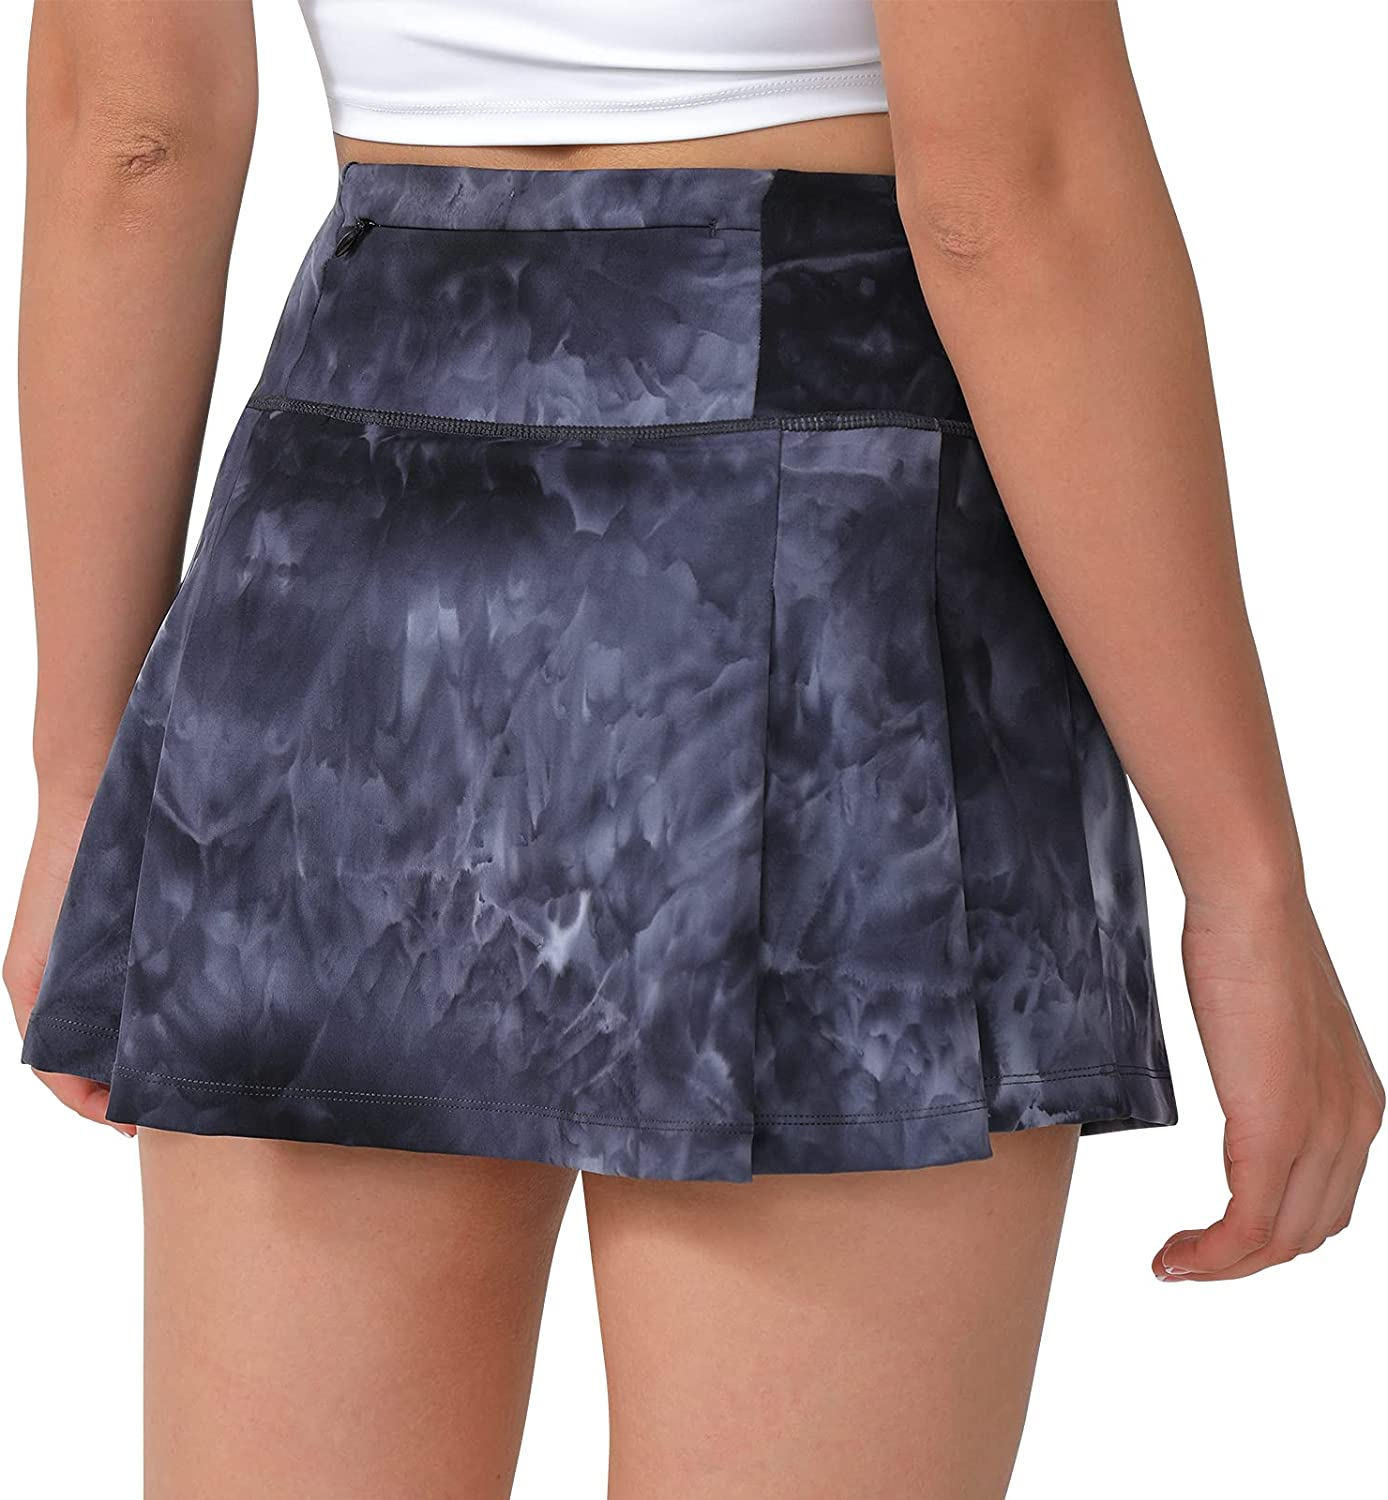 Eleloveph Women's 13in Pleated 2021 model Tennis Soft Luxury Skirt Max 40% OFF Fabric